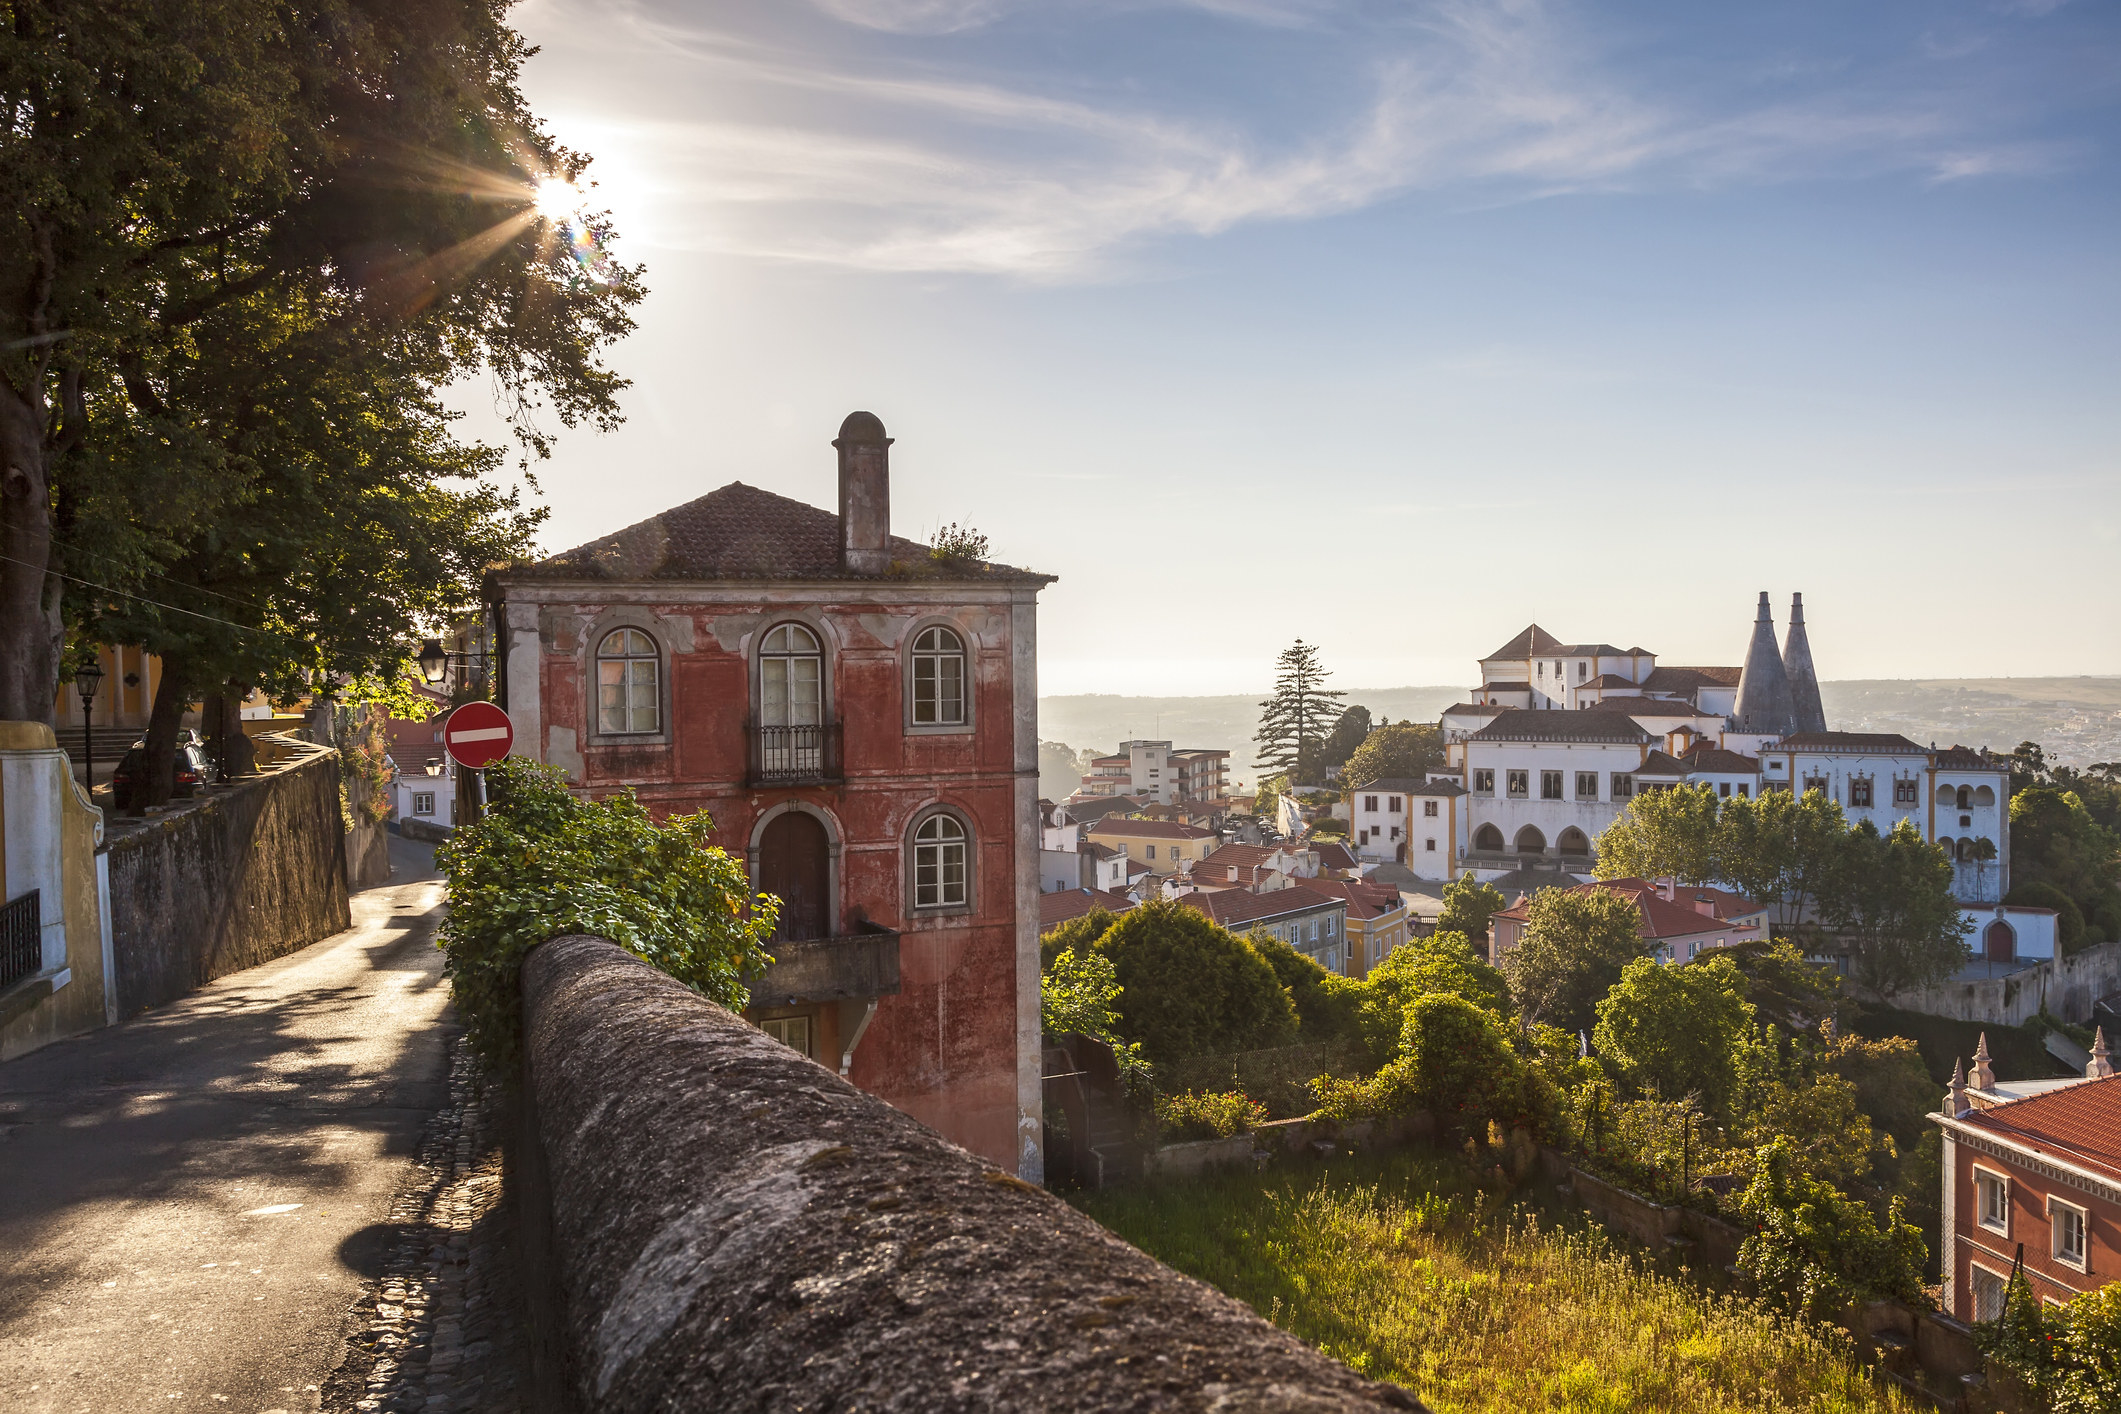 The town of Sintra, Portugal.